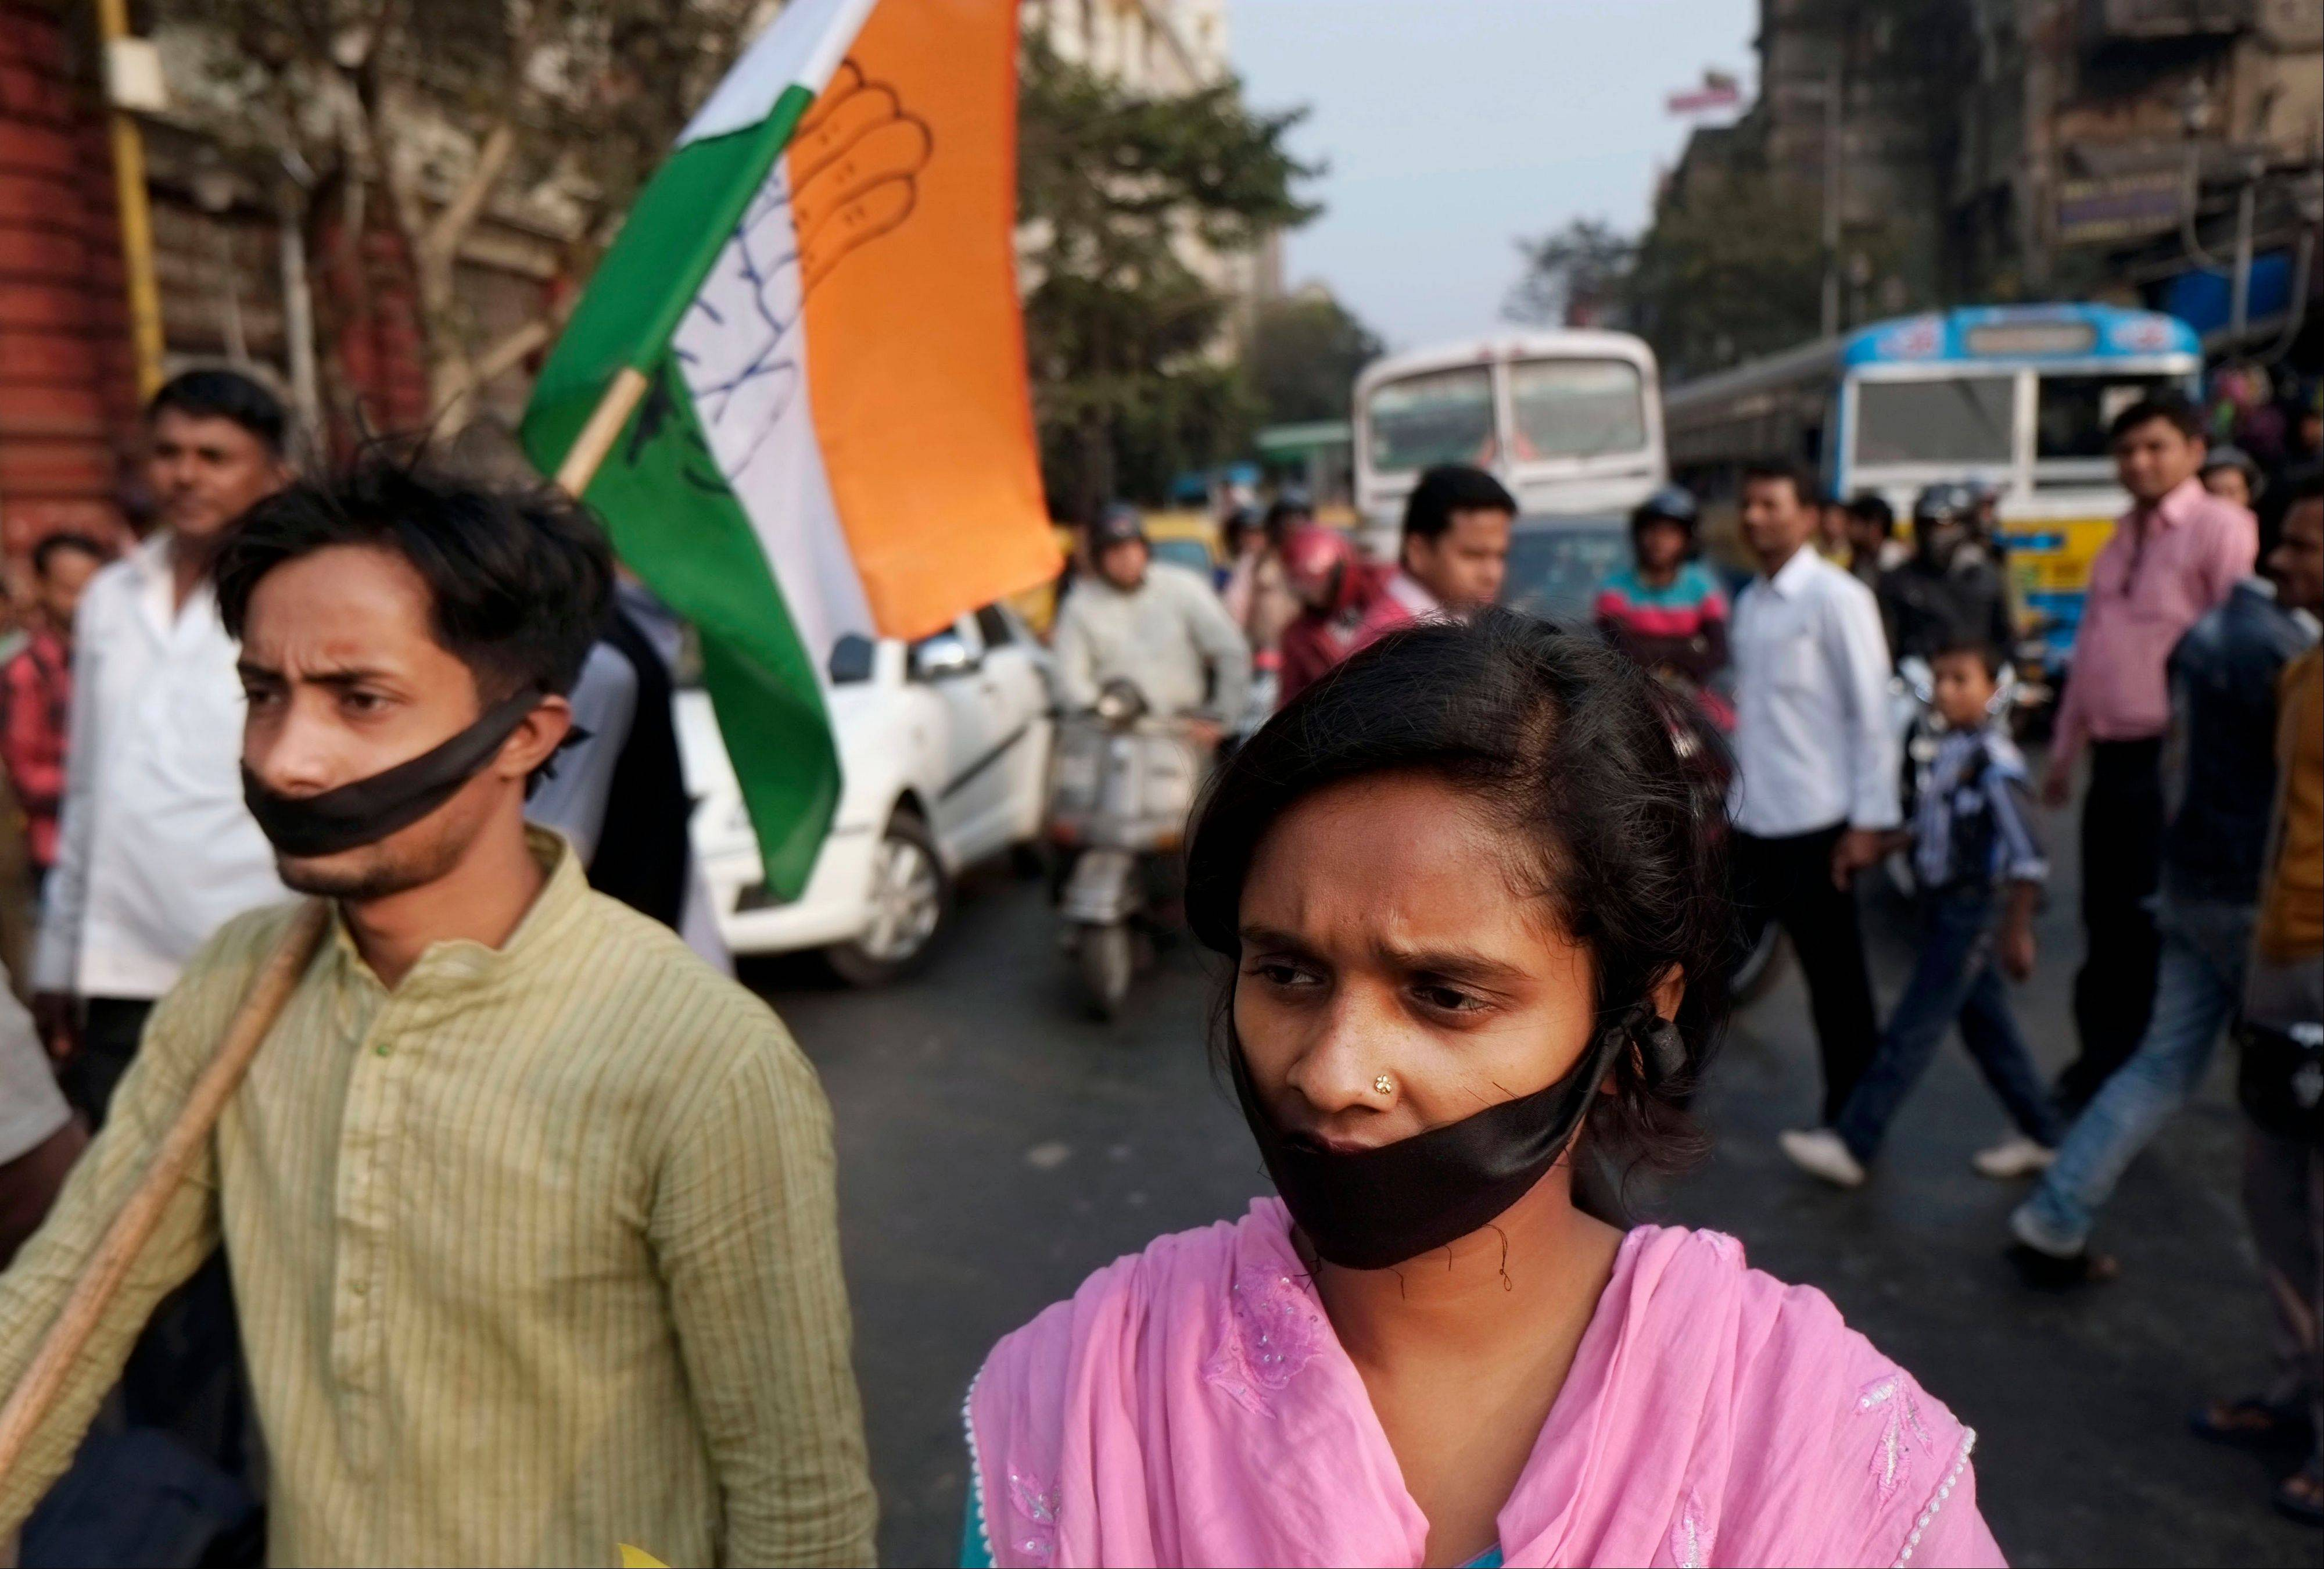 Activists of Indian National Congress with black bands around their mouth block traffic during a protest against a gang-rape and murder of a 16-year-old girl at Madhyamgram, about 16 miles north of Kolkata, India, Friday, Jan. 3. On Dec. 31 the girl was set on fire and died due to burn injuries after being raped twice in October. The death of the girl has sparked outrage in the metropolis.